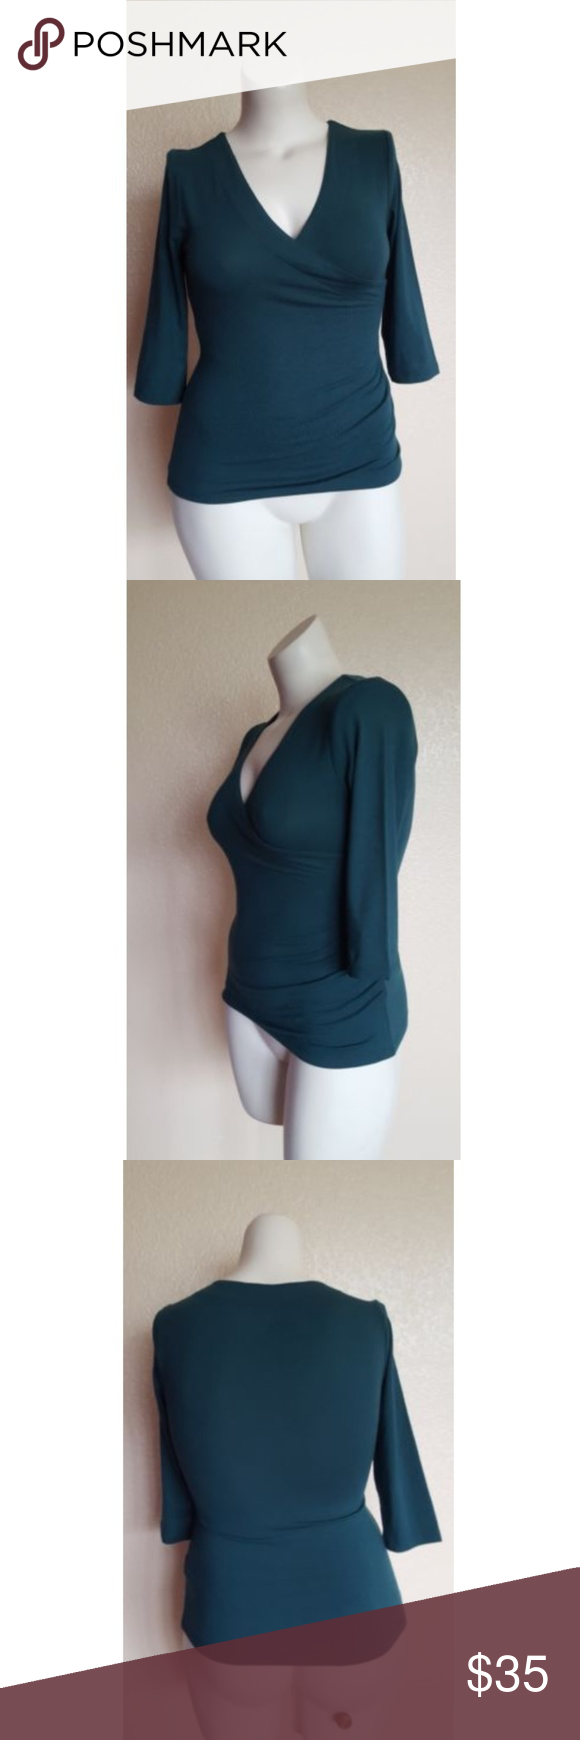 7d1be41afd8 Soft Surroundings 3/4 Sleeve Faux Wrap Top PXS Soft Surroundings 3/4 Sleeve